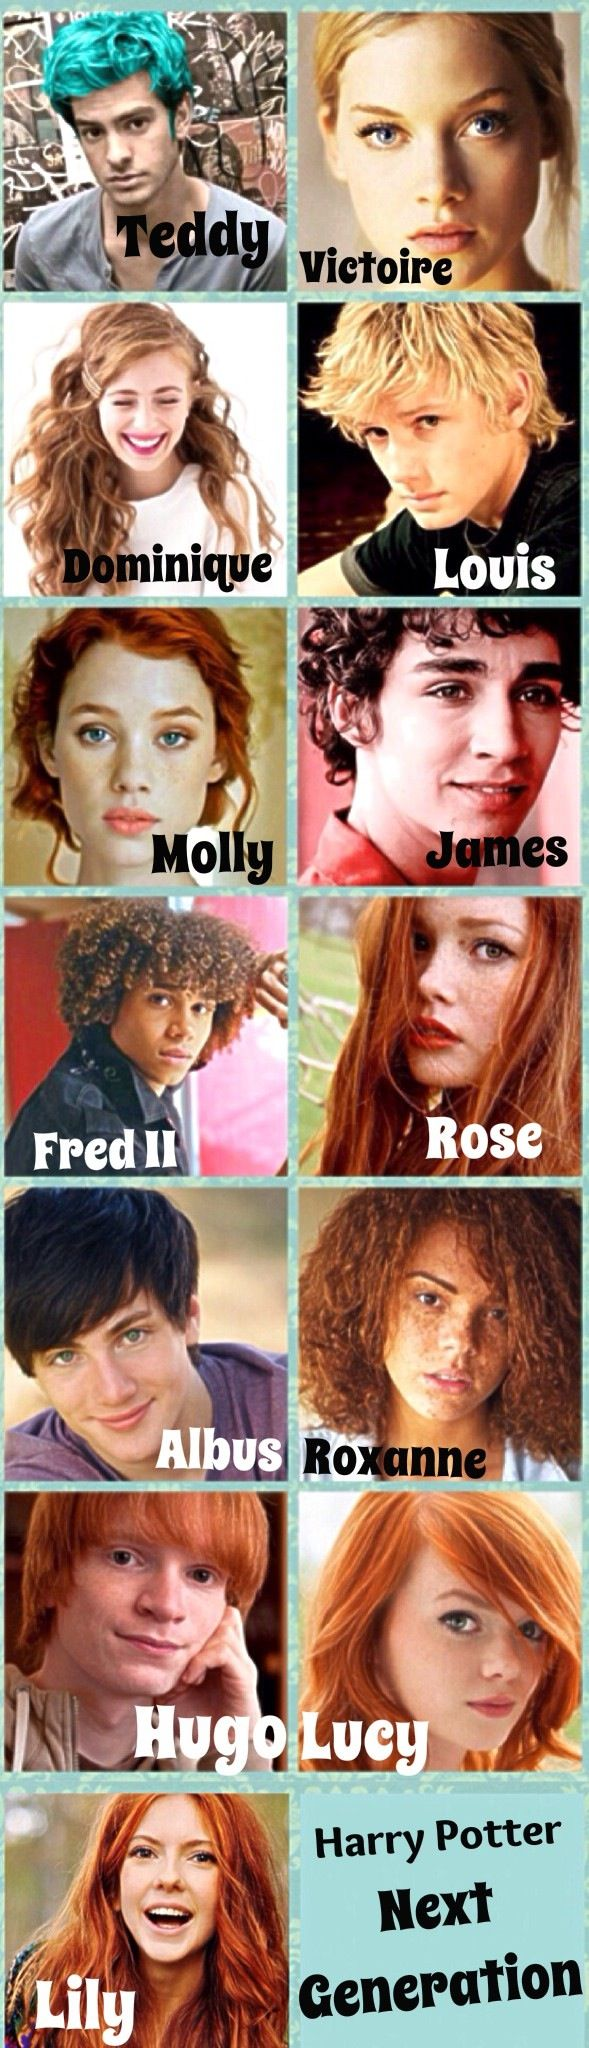 Harry Potter Next Generation!